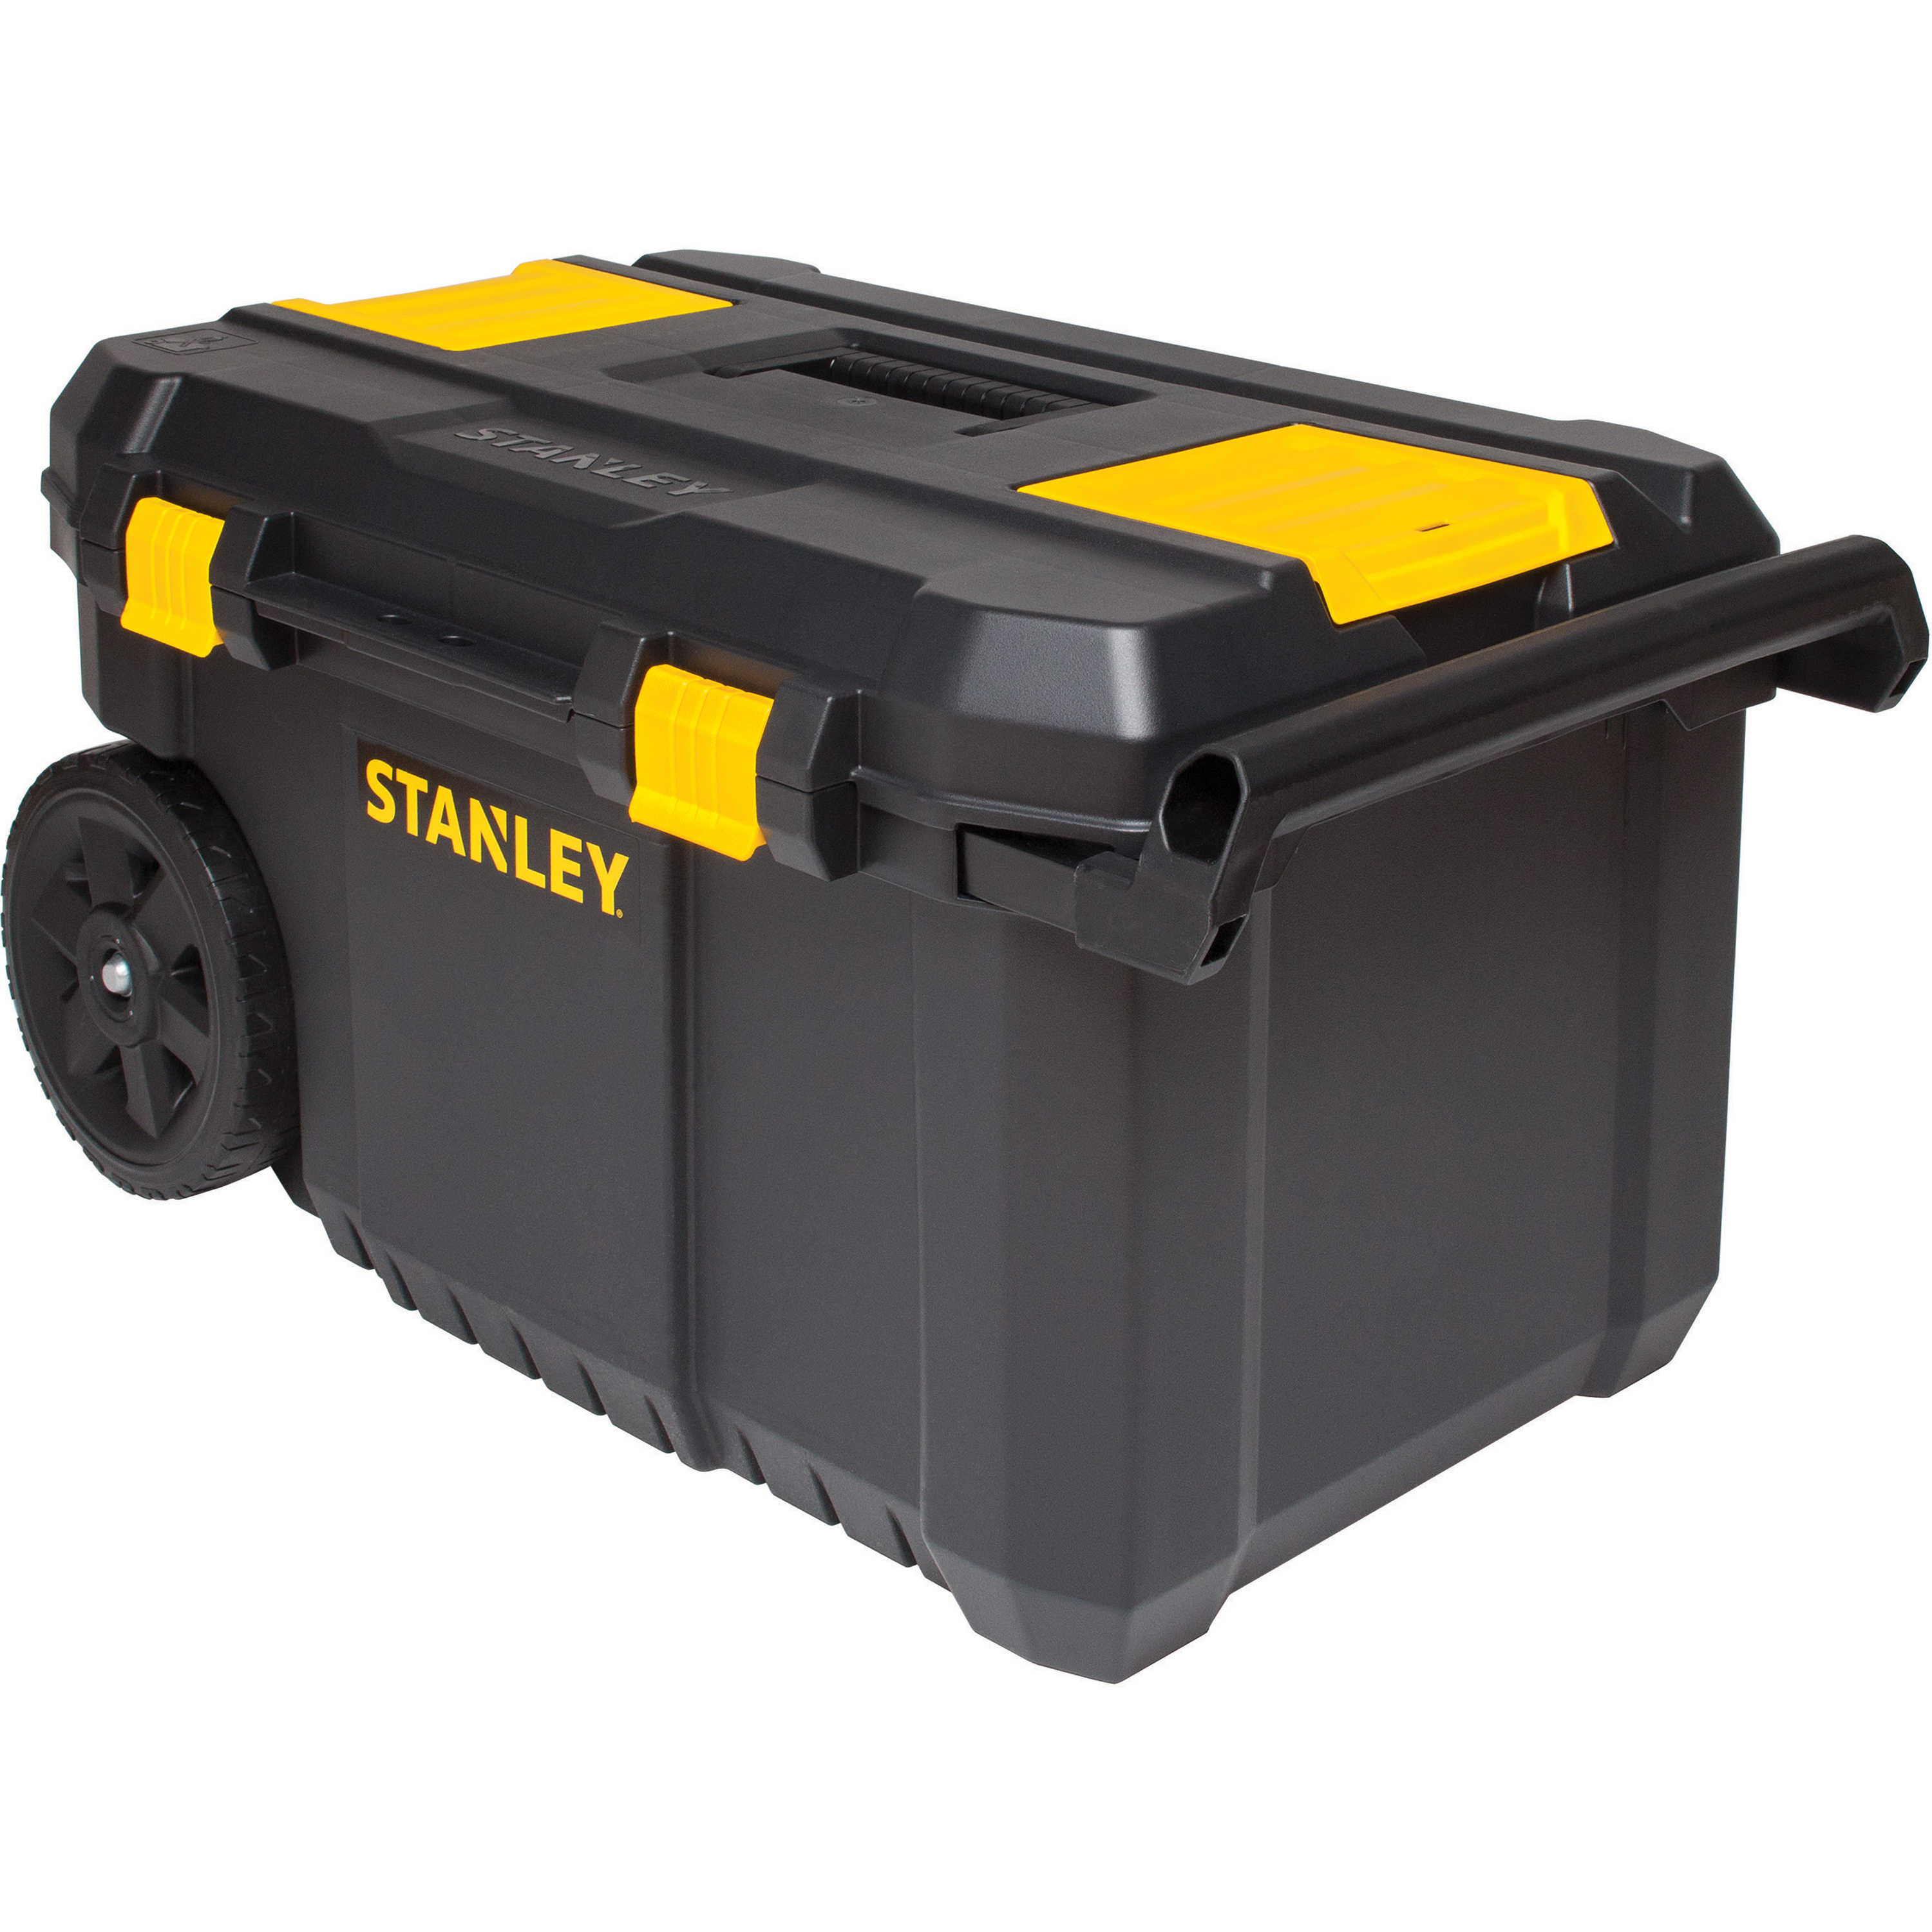 Stanley STST33031W 13 Gal Mobile Chest